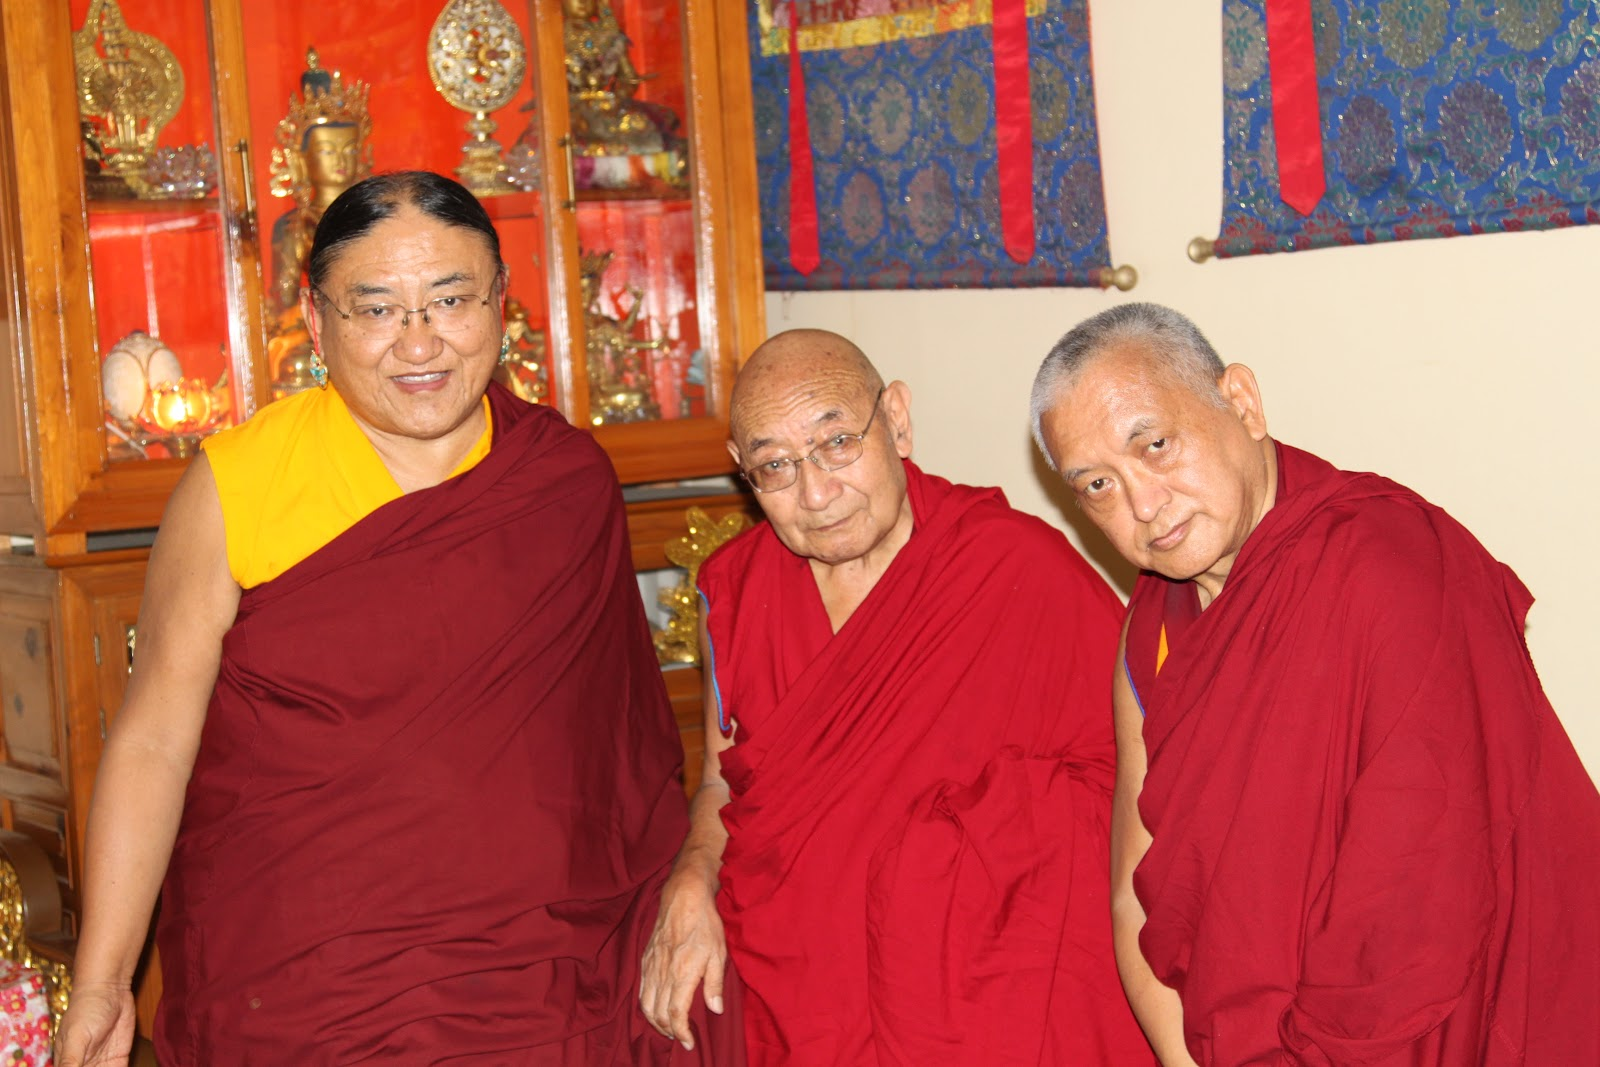 Sponsoring rare oral transmissions from HH Sakya Trizen